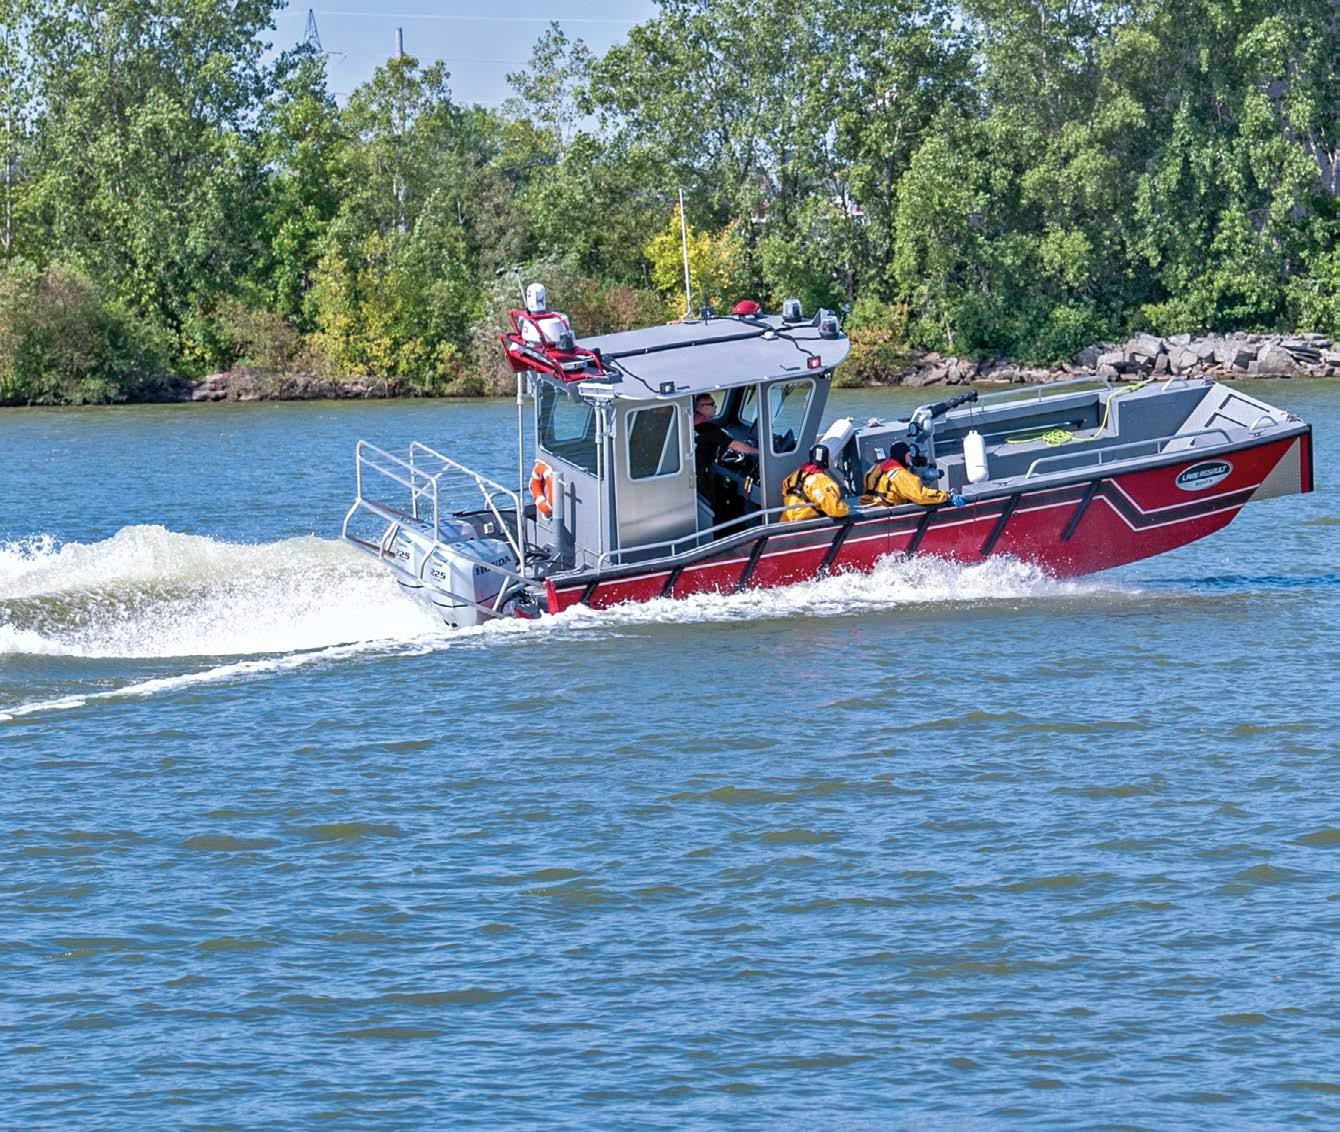 MPC and other industry partners pooled resources with the Green Bay, Wisconsin, Fire Department to purchase a firefighting and rescue boat to serve the community and local industry.